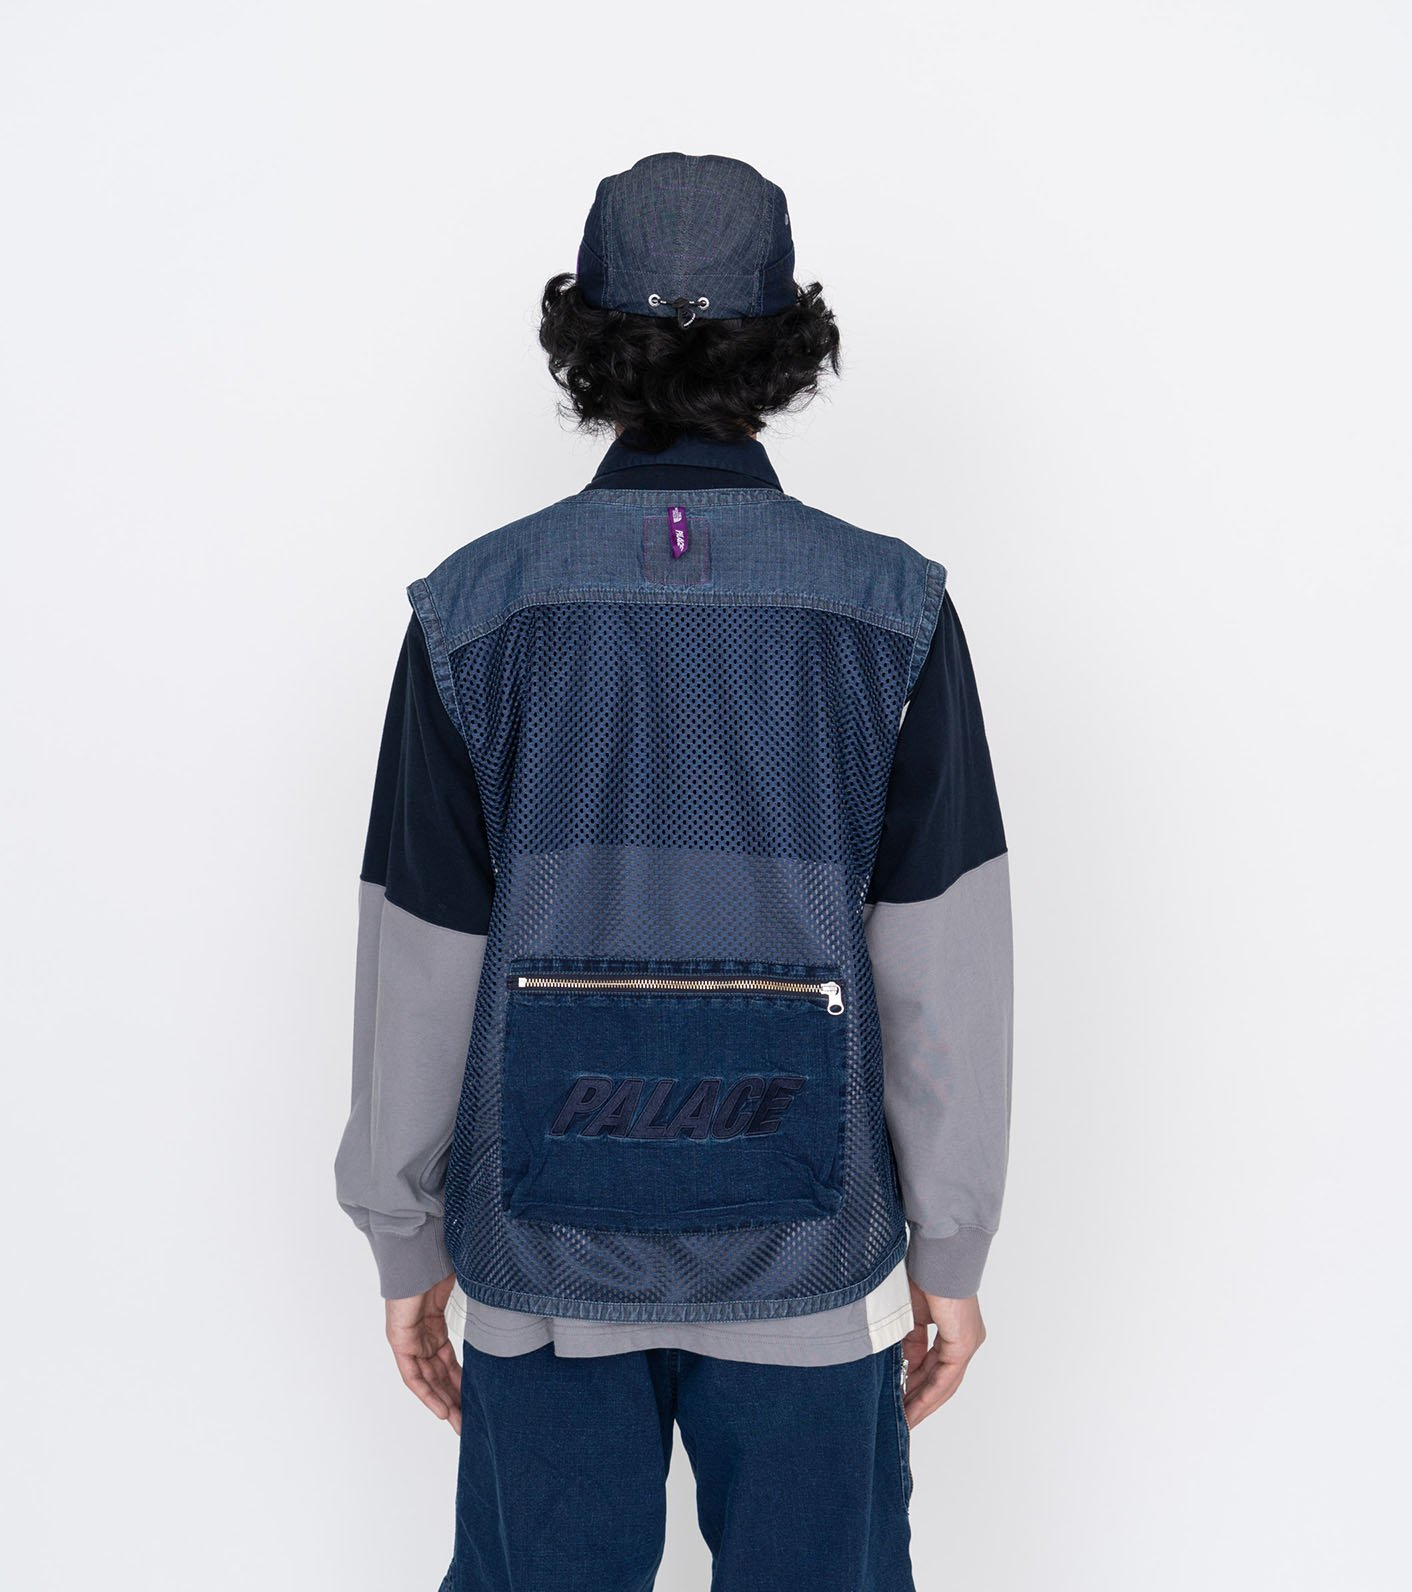 palace-the-north-face-purple-label-21ss-collaboration-release-20210327